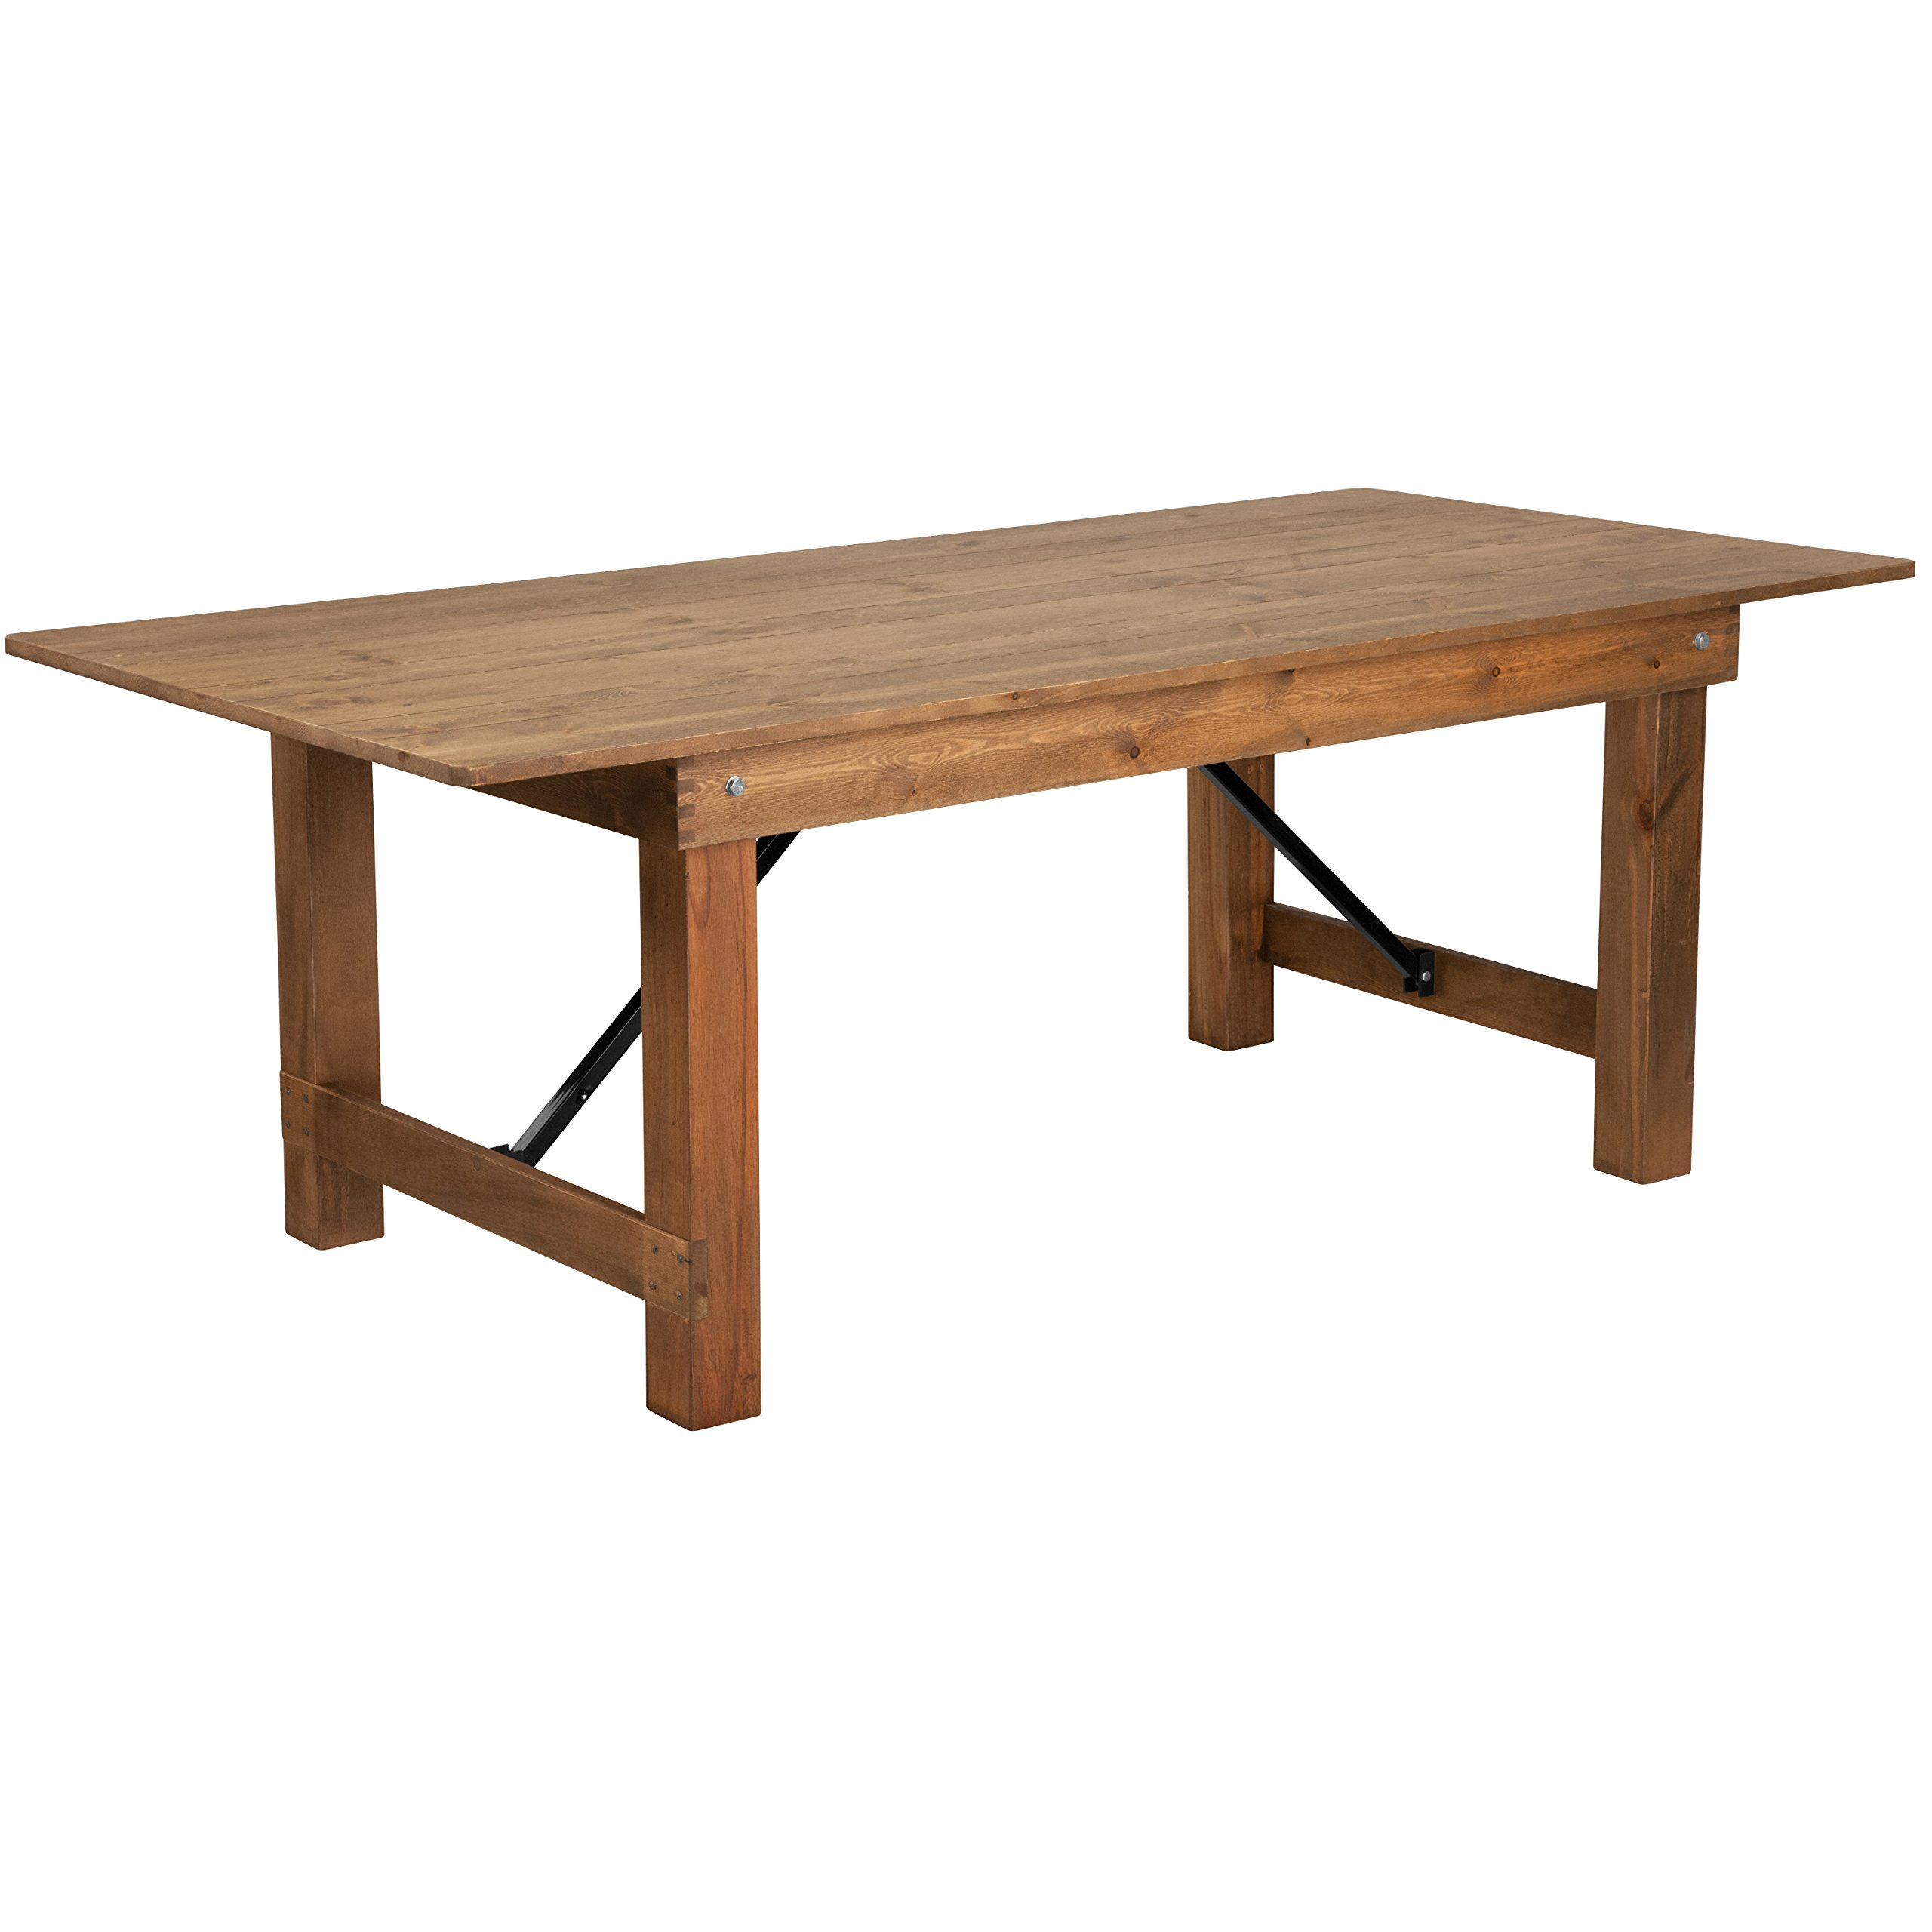 Flash Furniture HERCULES Series 7' x 40'' Antique Rustic Solid Pine Folding Farm Table by Flash Furniture